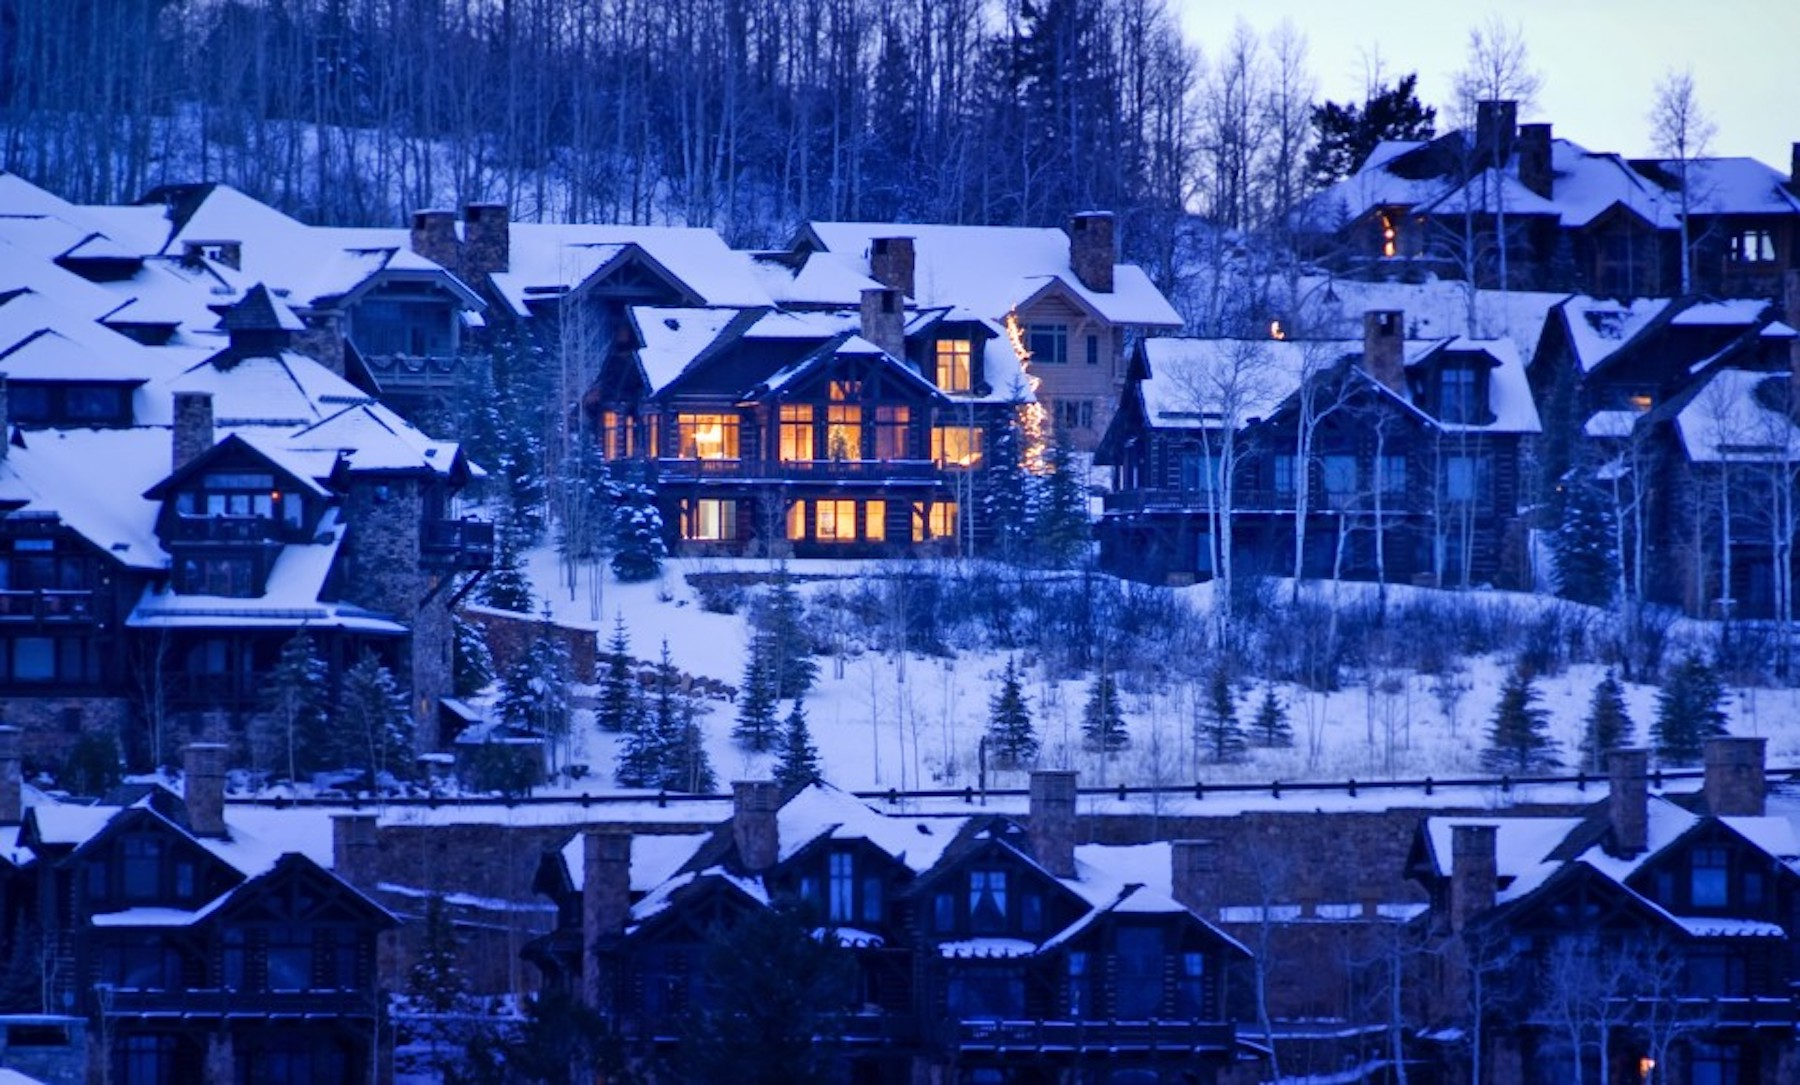 Tivoli Lodge Vail This Ultimate Skiing Destination Is More Than Just The Slopes